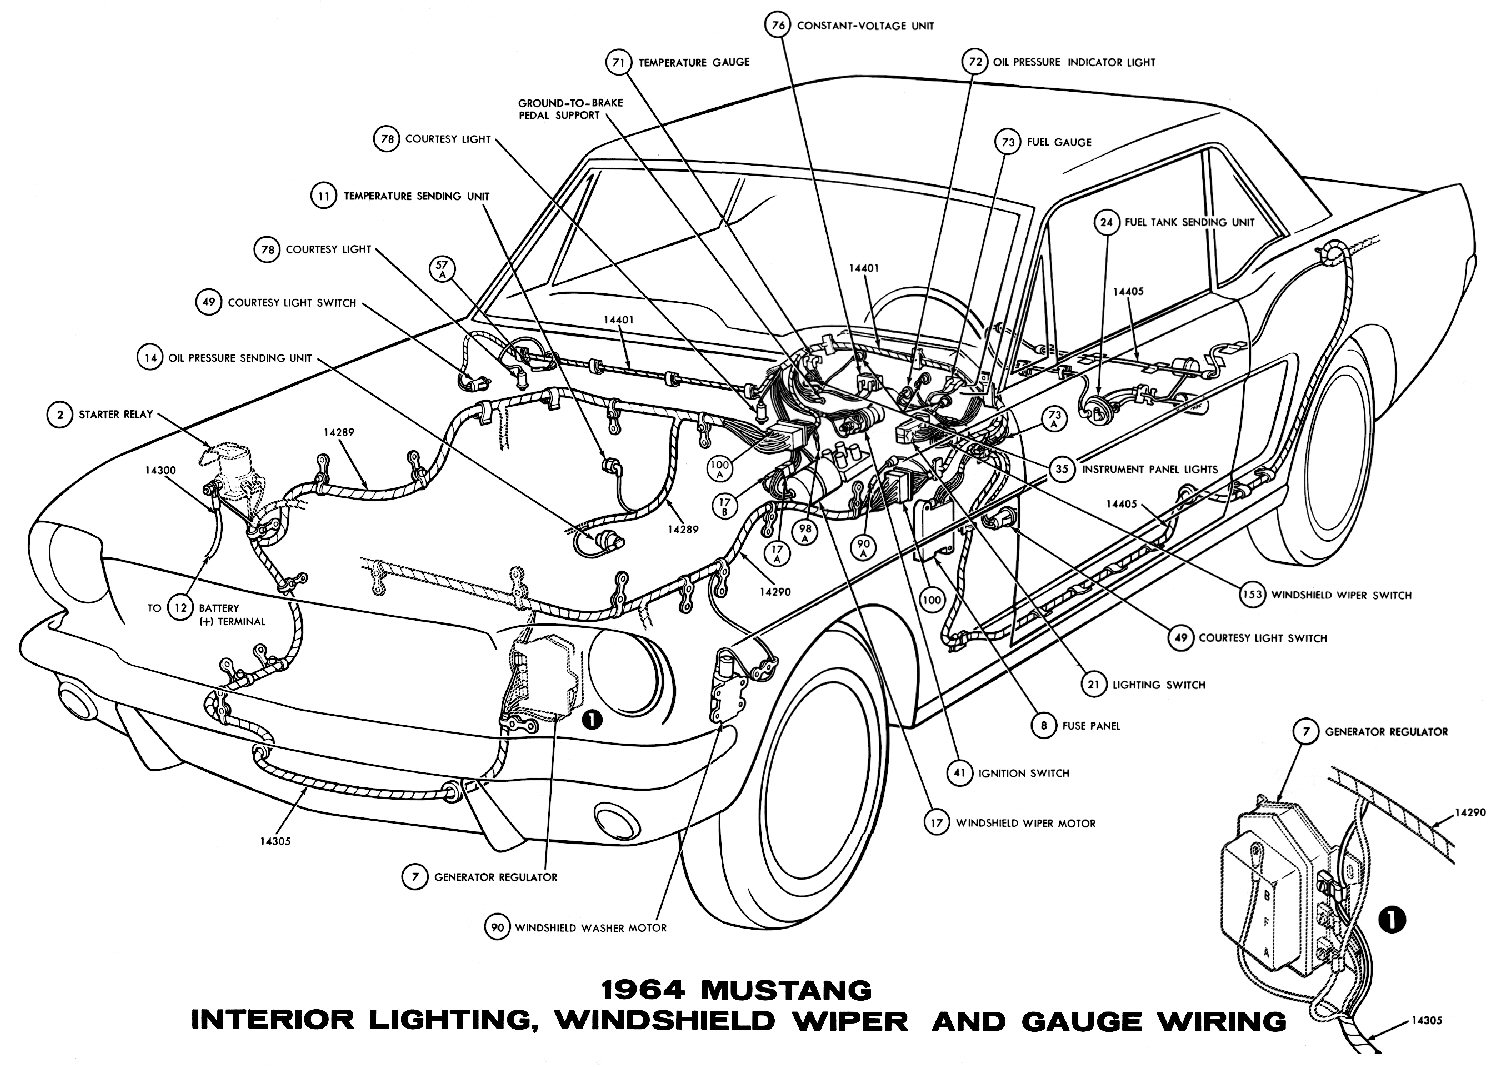 1964 Mustang Wiring Diagrams Average Joe Restoration 1968 Transmission Selector Diagram Sm1964j Interior Lights Windshield Wiper And Gauges Pictorial Or Schematic